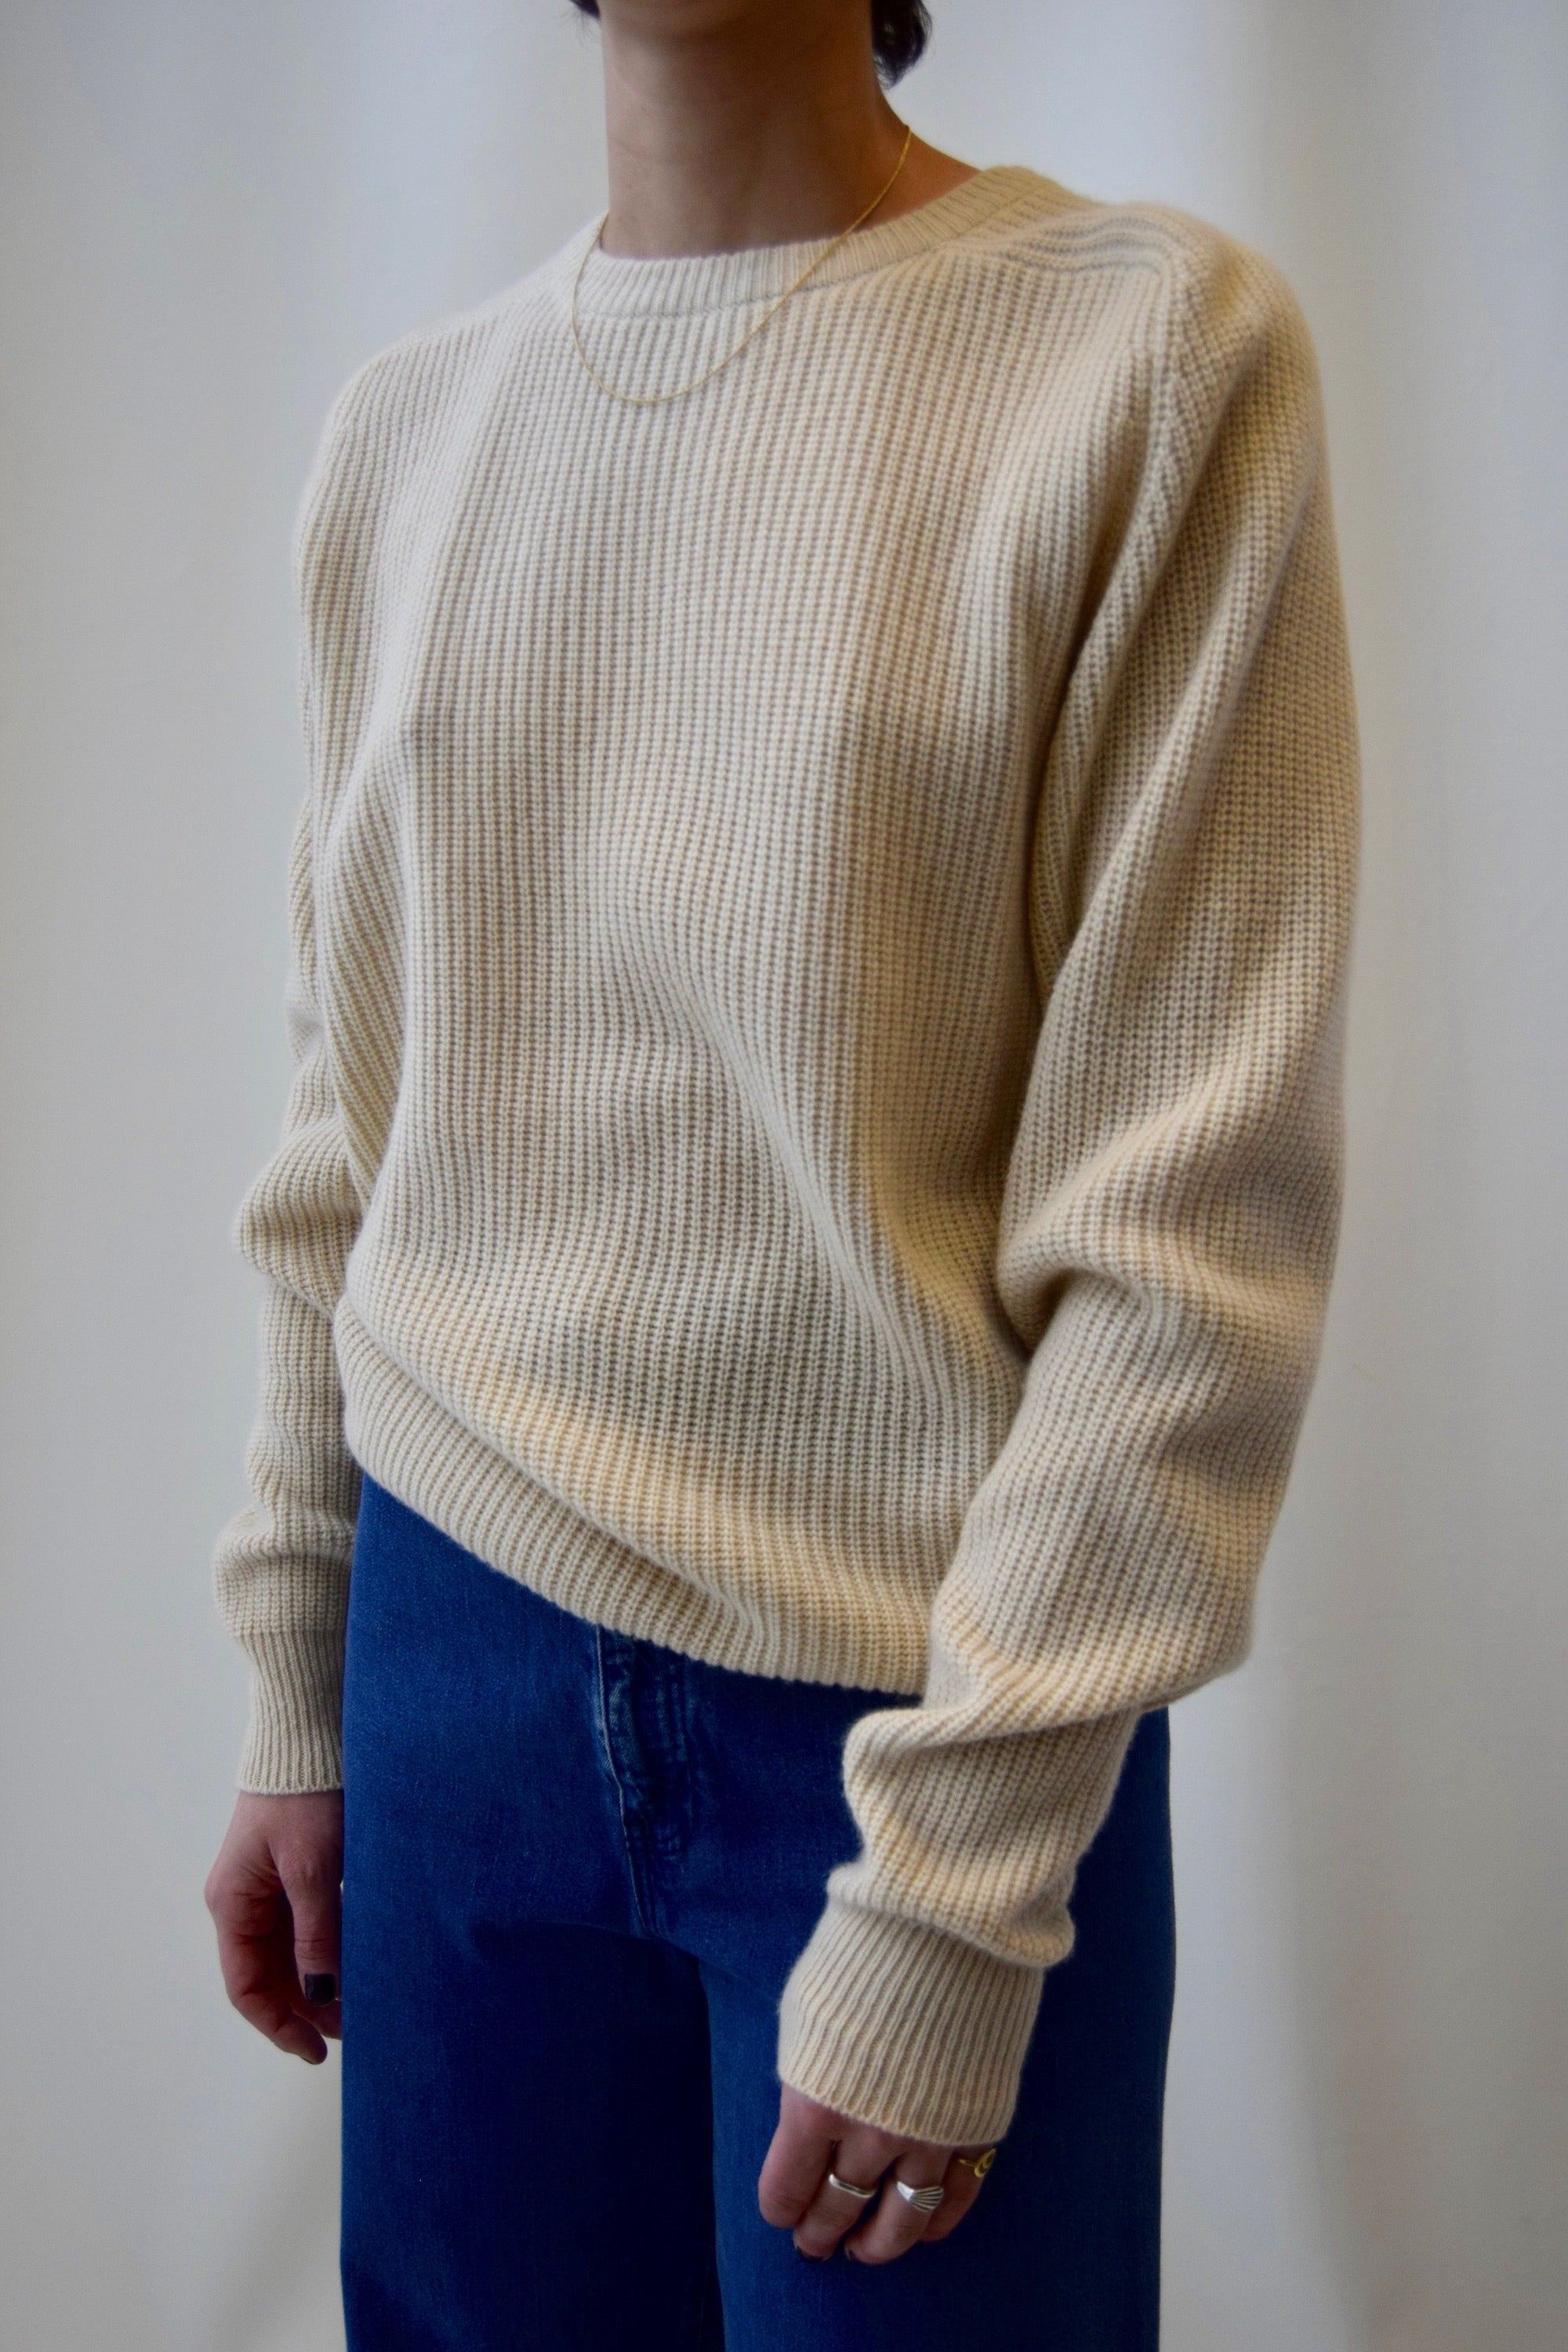 Minimalist Cream Cashmere Knit FREE SHIPPING TO THE U.S.